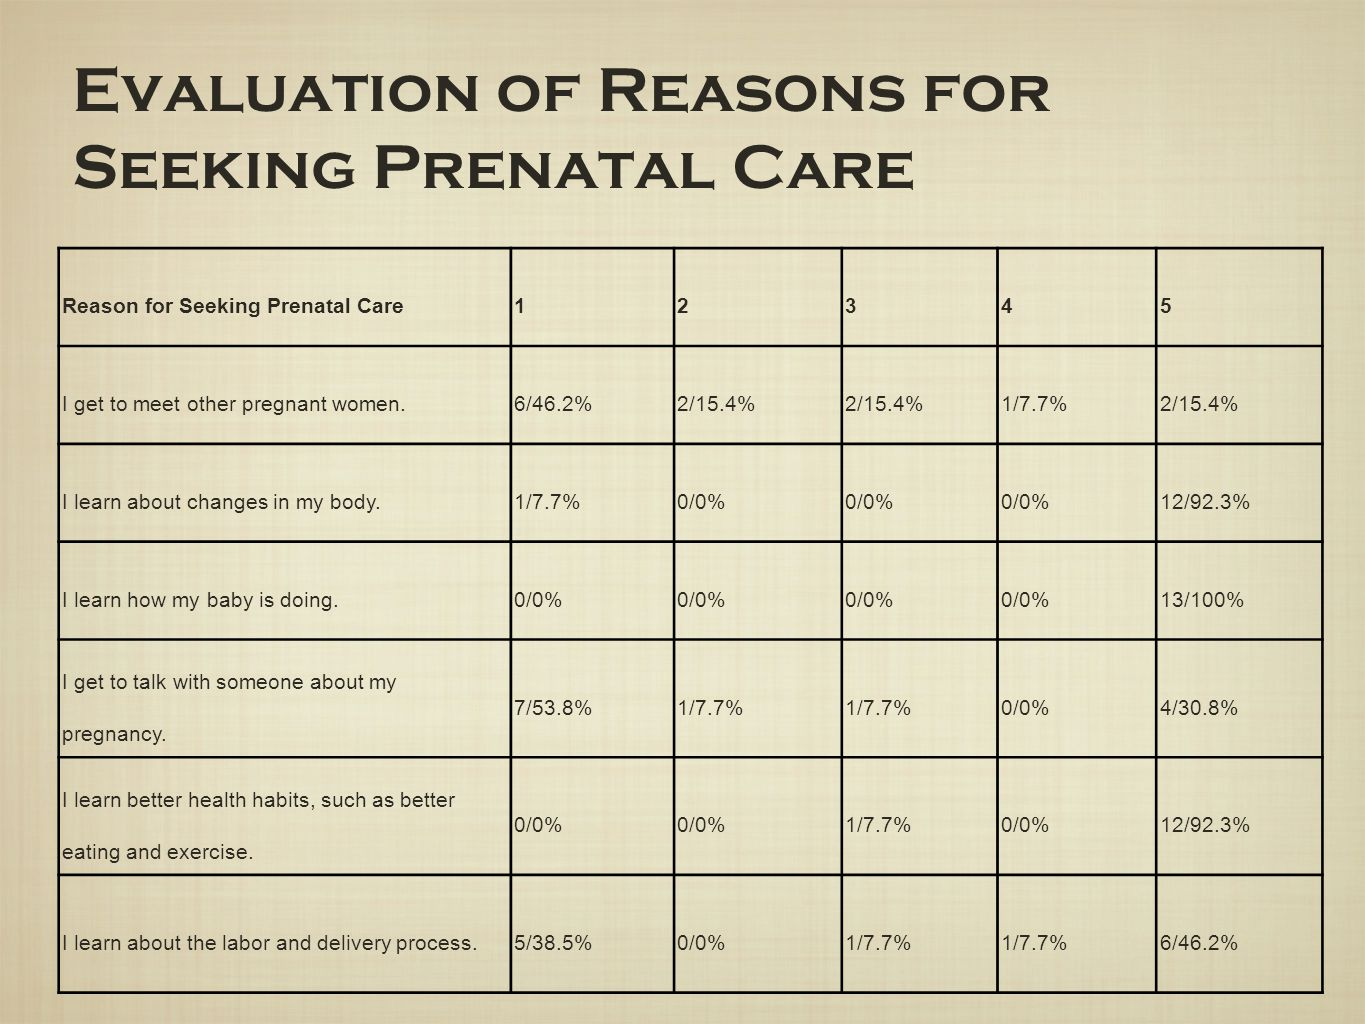 Evaluation of Reasons for Seeking Prenatal Care